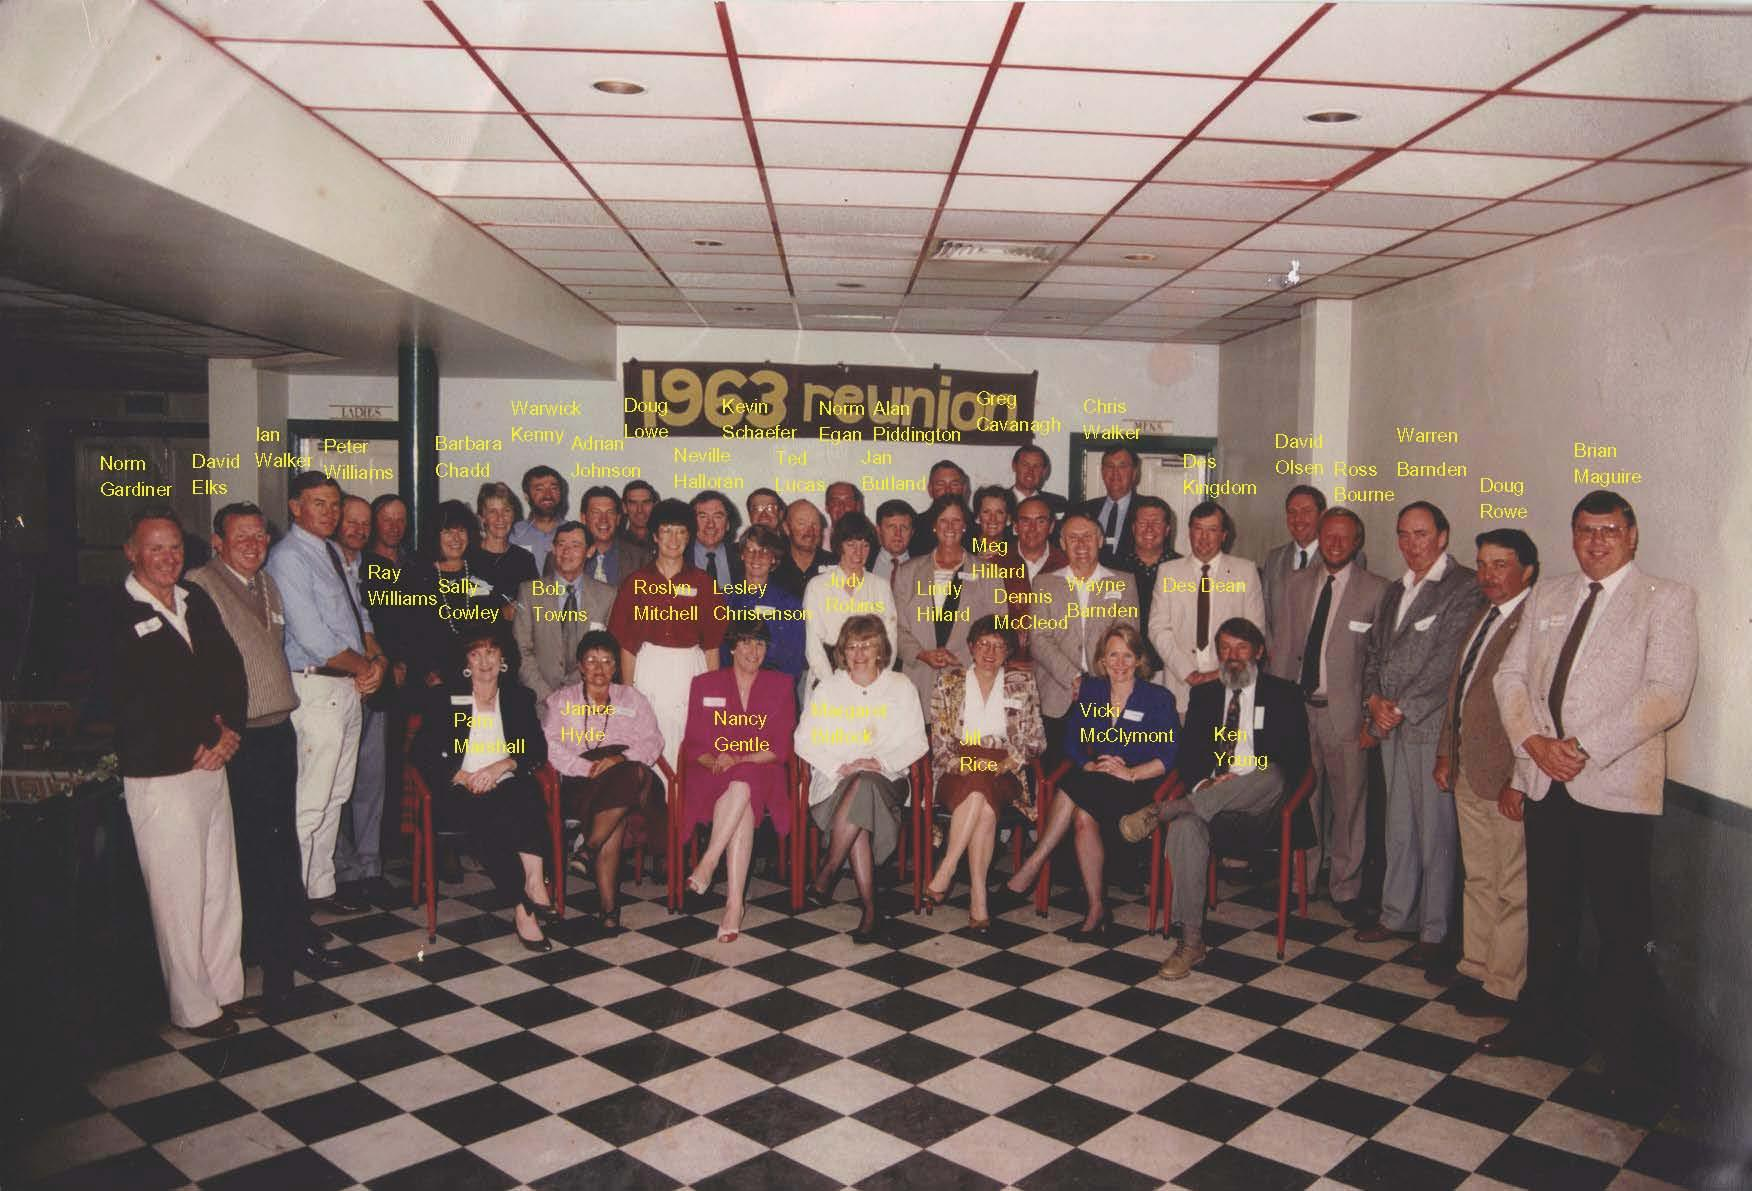 Members of the Class of 1963 at a reunion in 1993